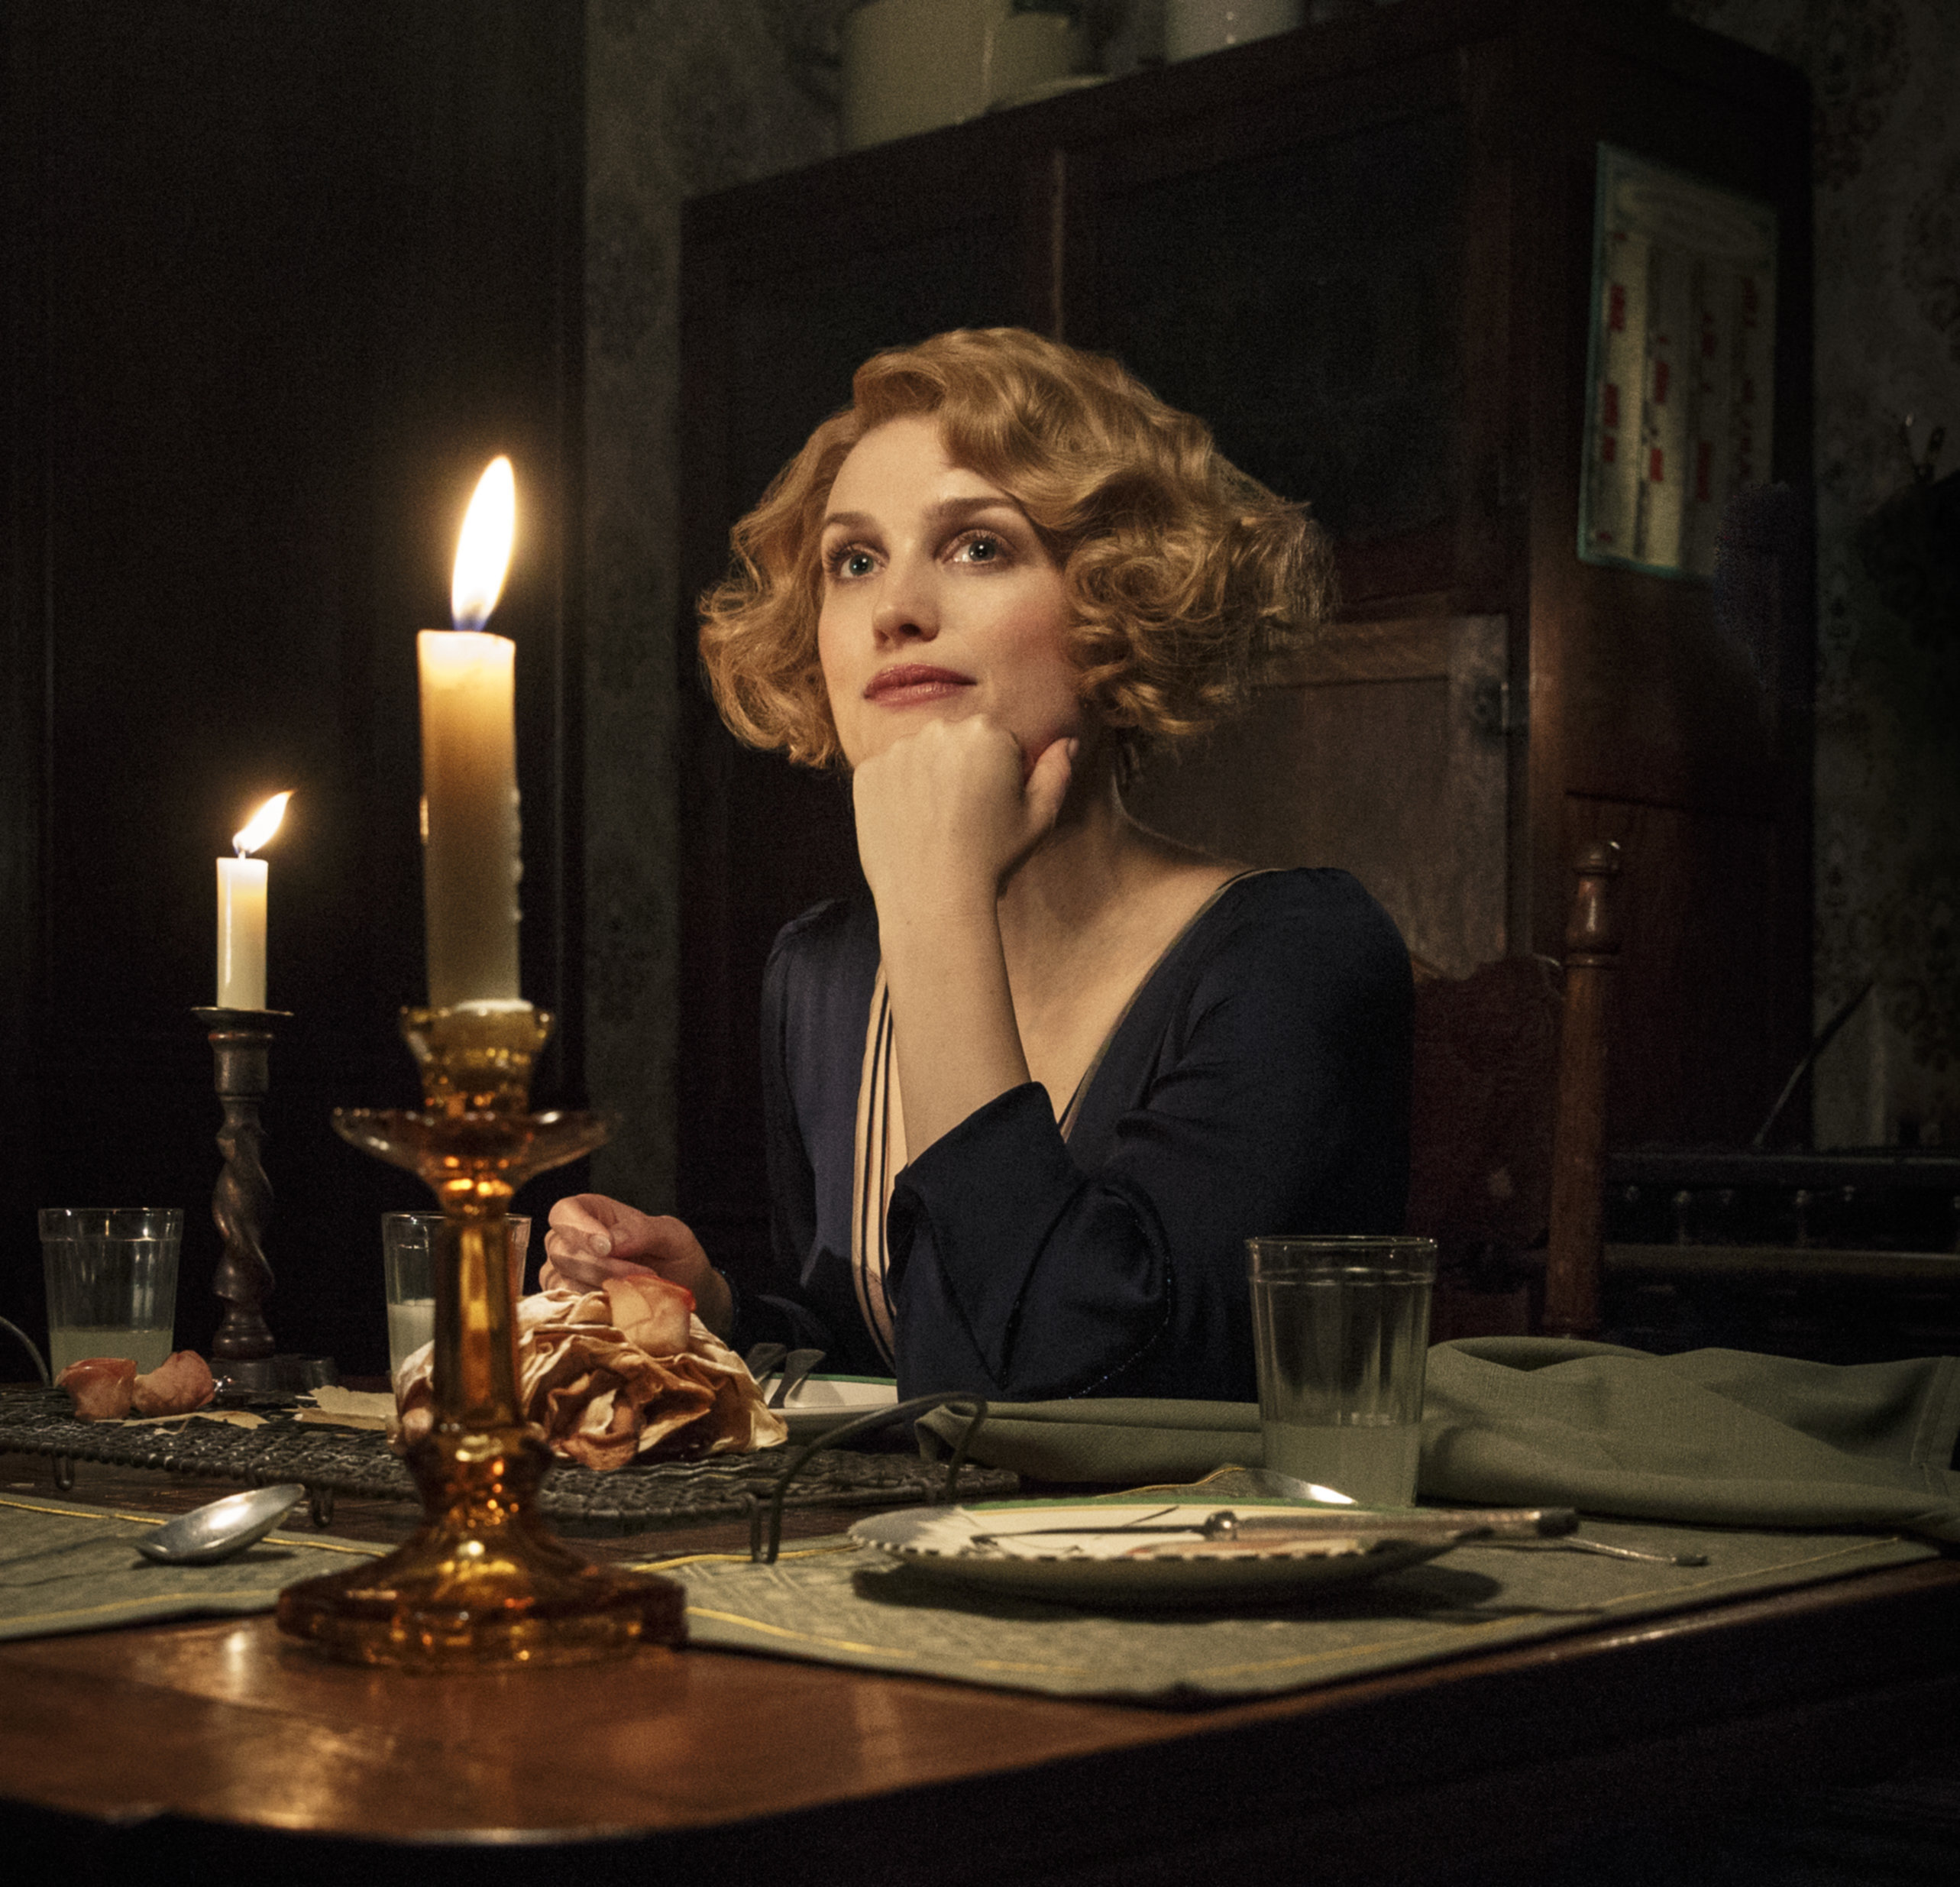 Queenie Goldstien rests her chin on her hand as she sits at a candlelit dinner table